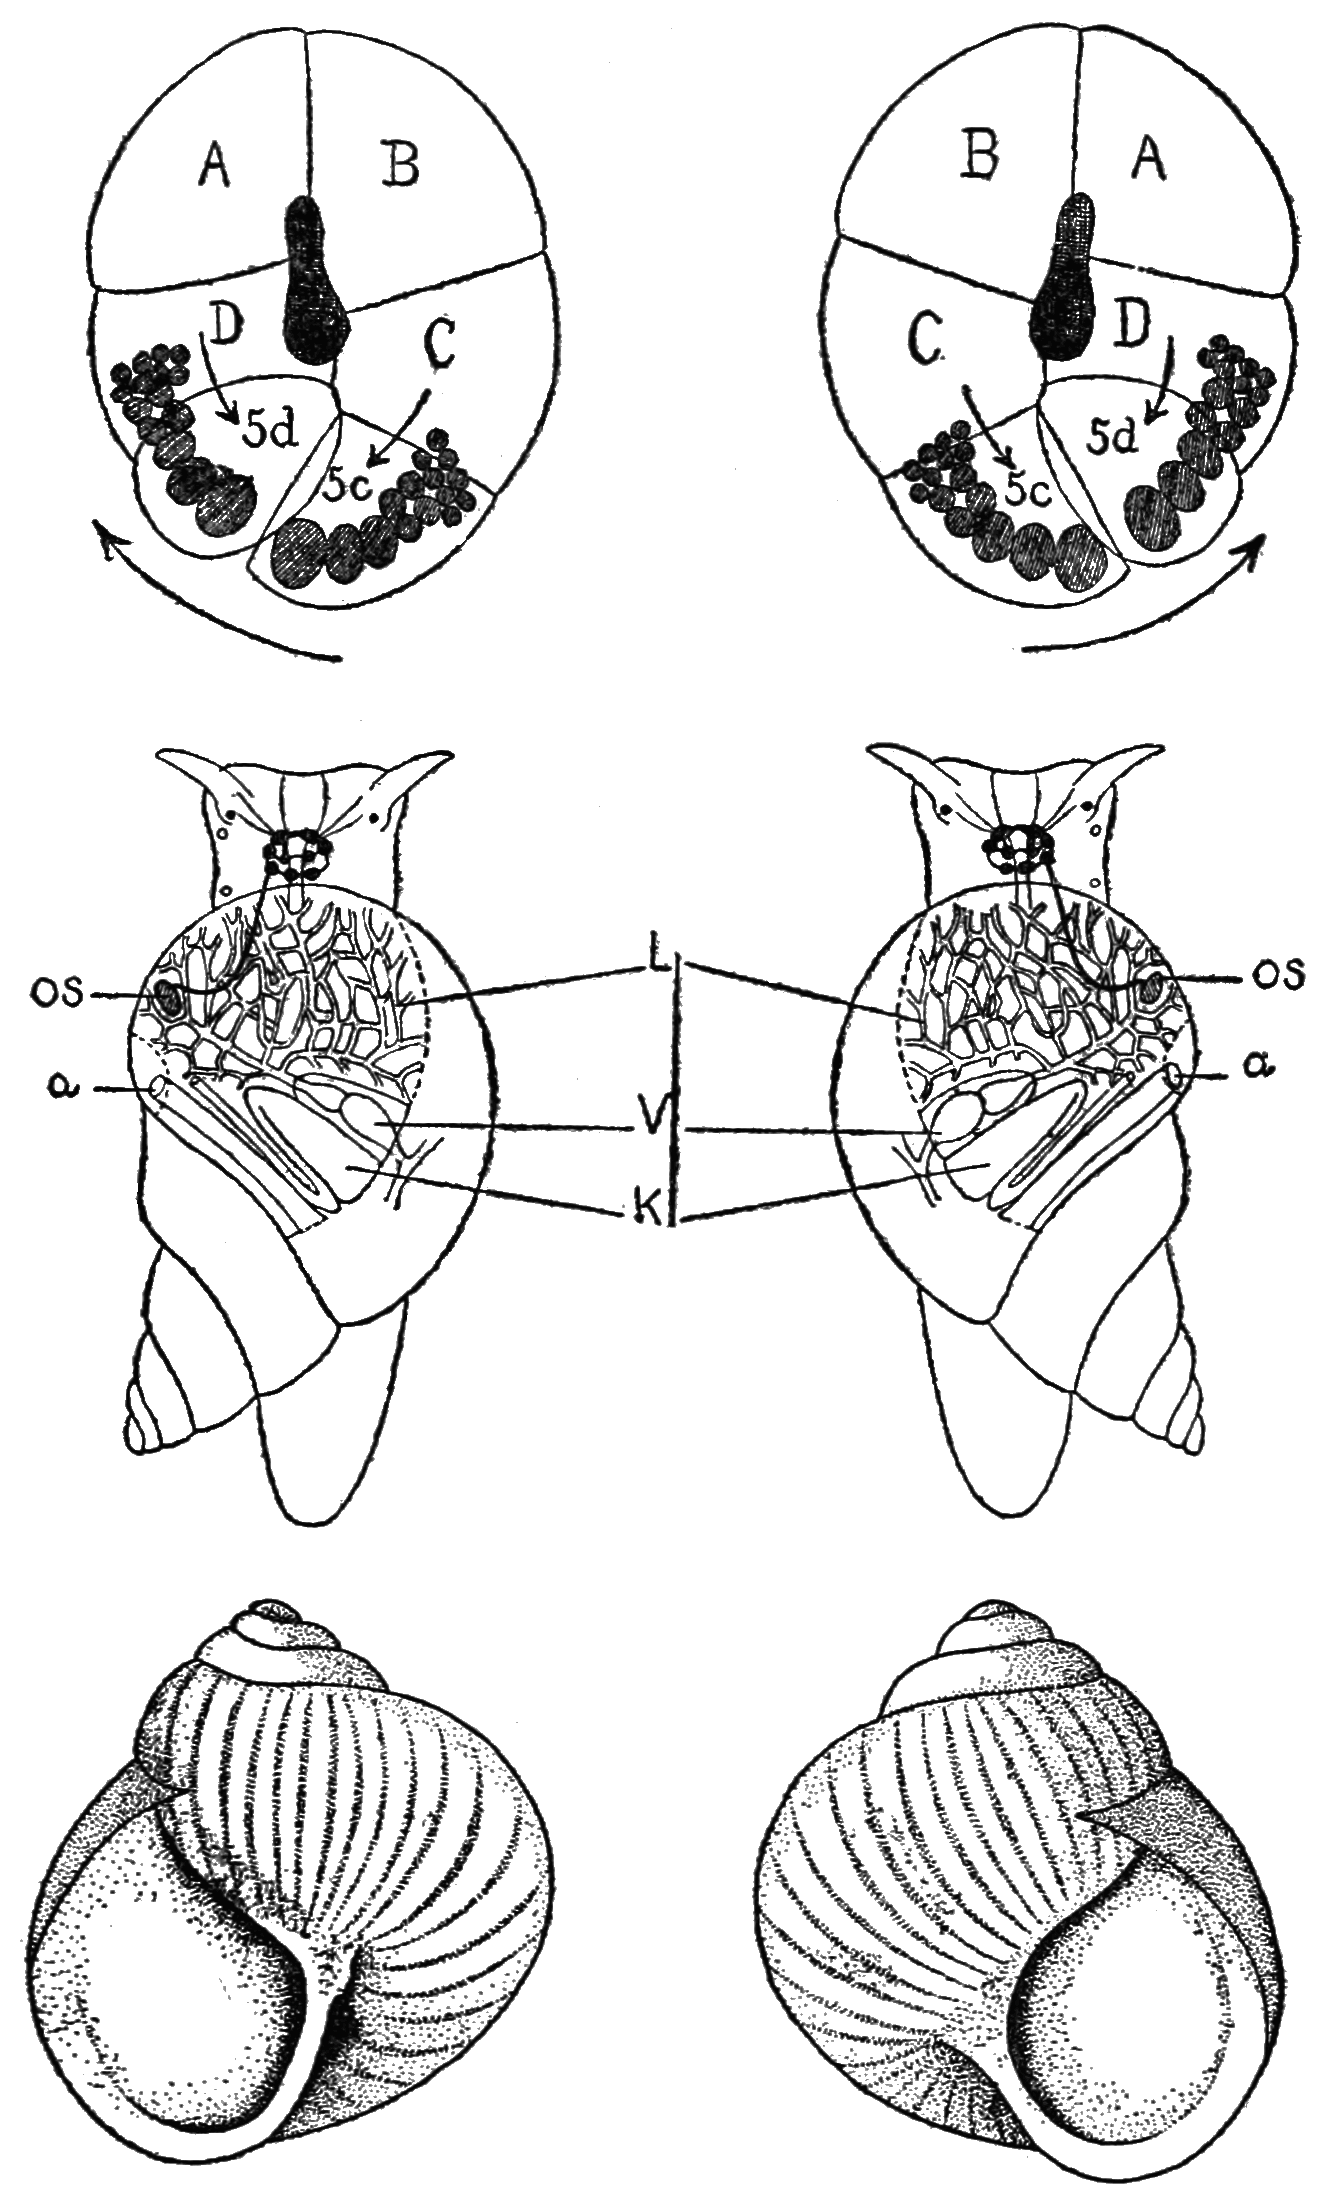 PSM V85 D245 Inverse symmetry in late embryos and adult stages of snails.png